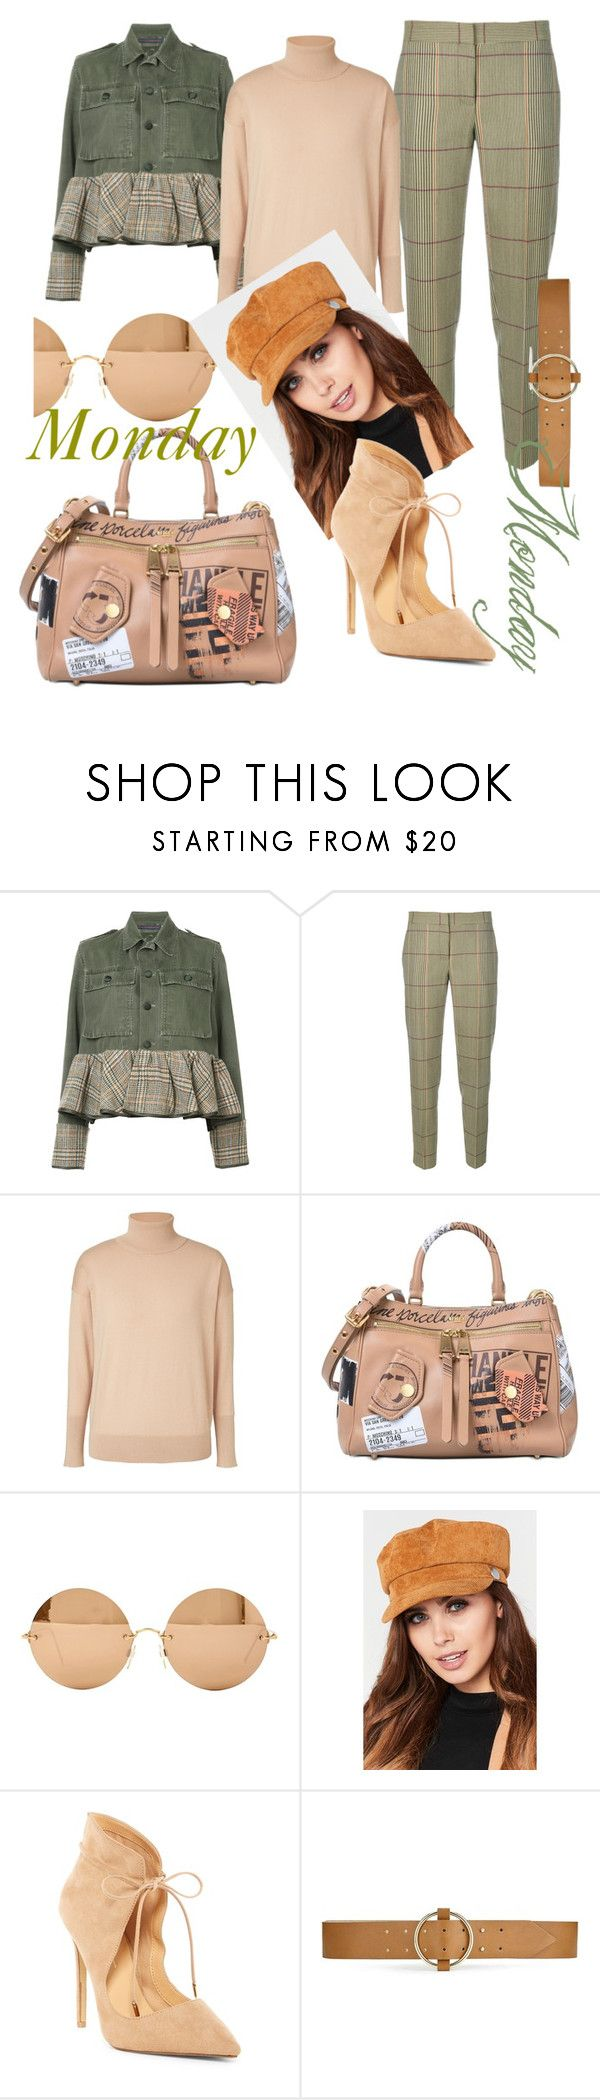 """Every other day of the week is fine......"" by mdfletch ❤ liked on Polyvore featuring Harvey Faircloth, Paul Smith, Winser London, Moschino, Victoria Beckham, Daya, Miss Selfridge and mondaymonday"